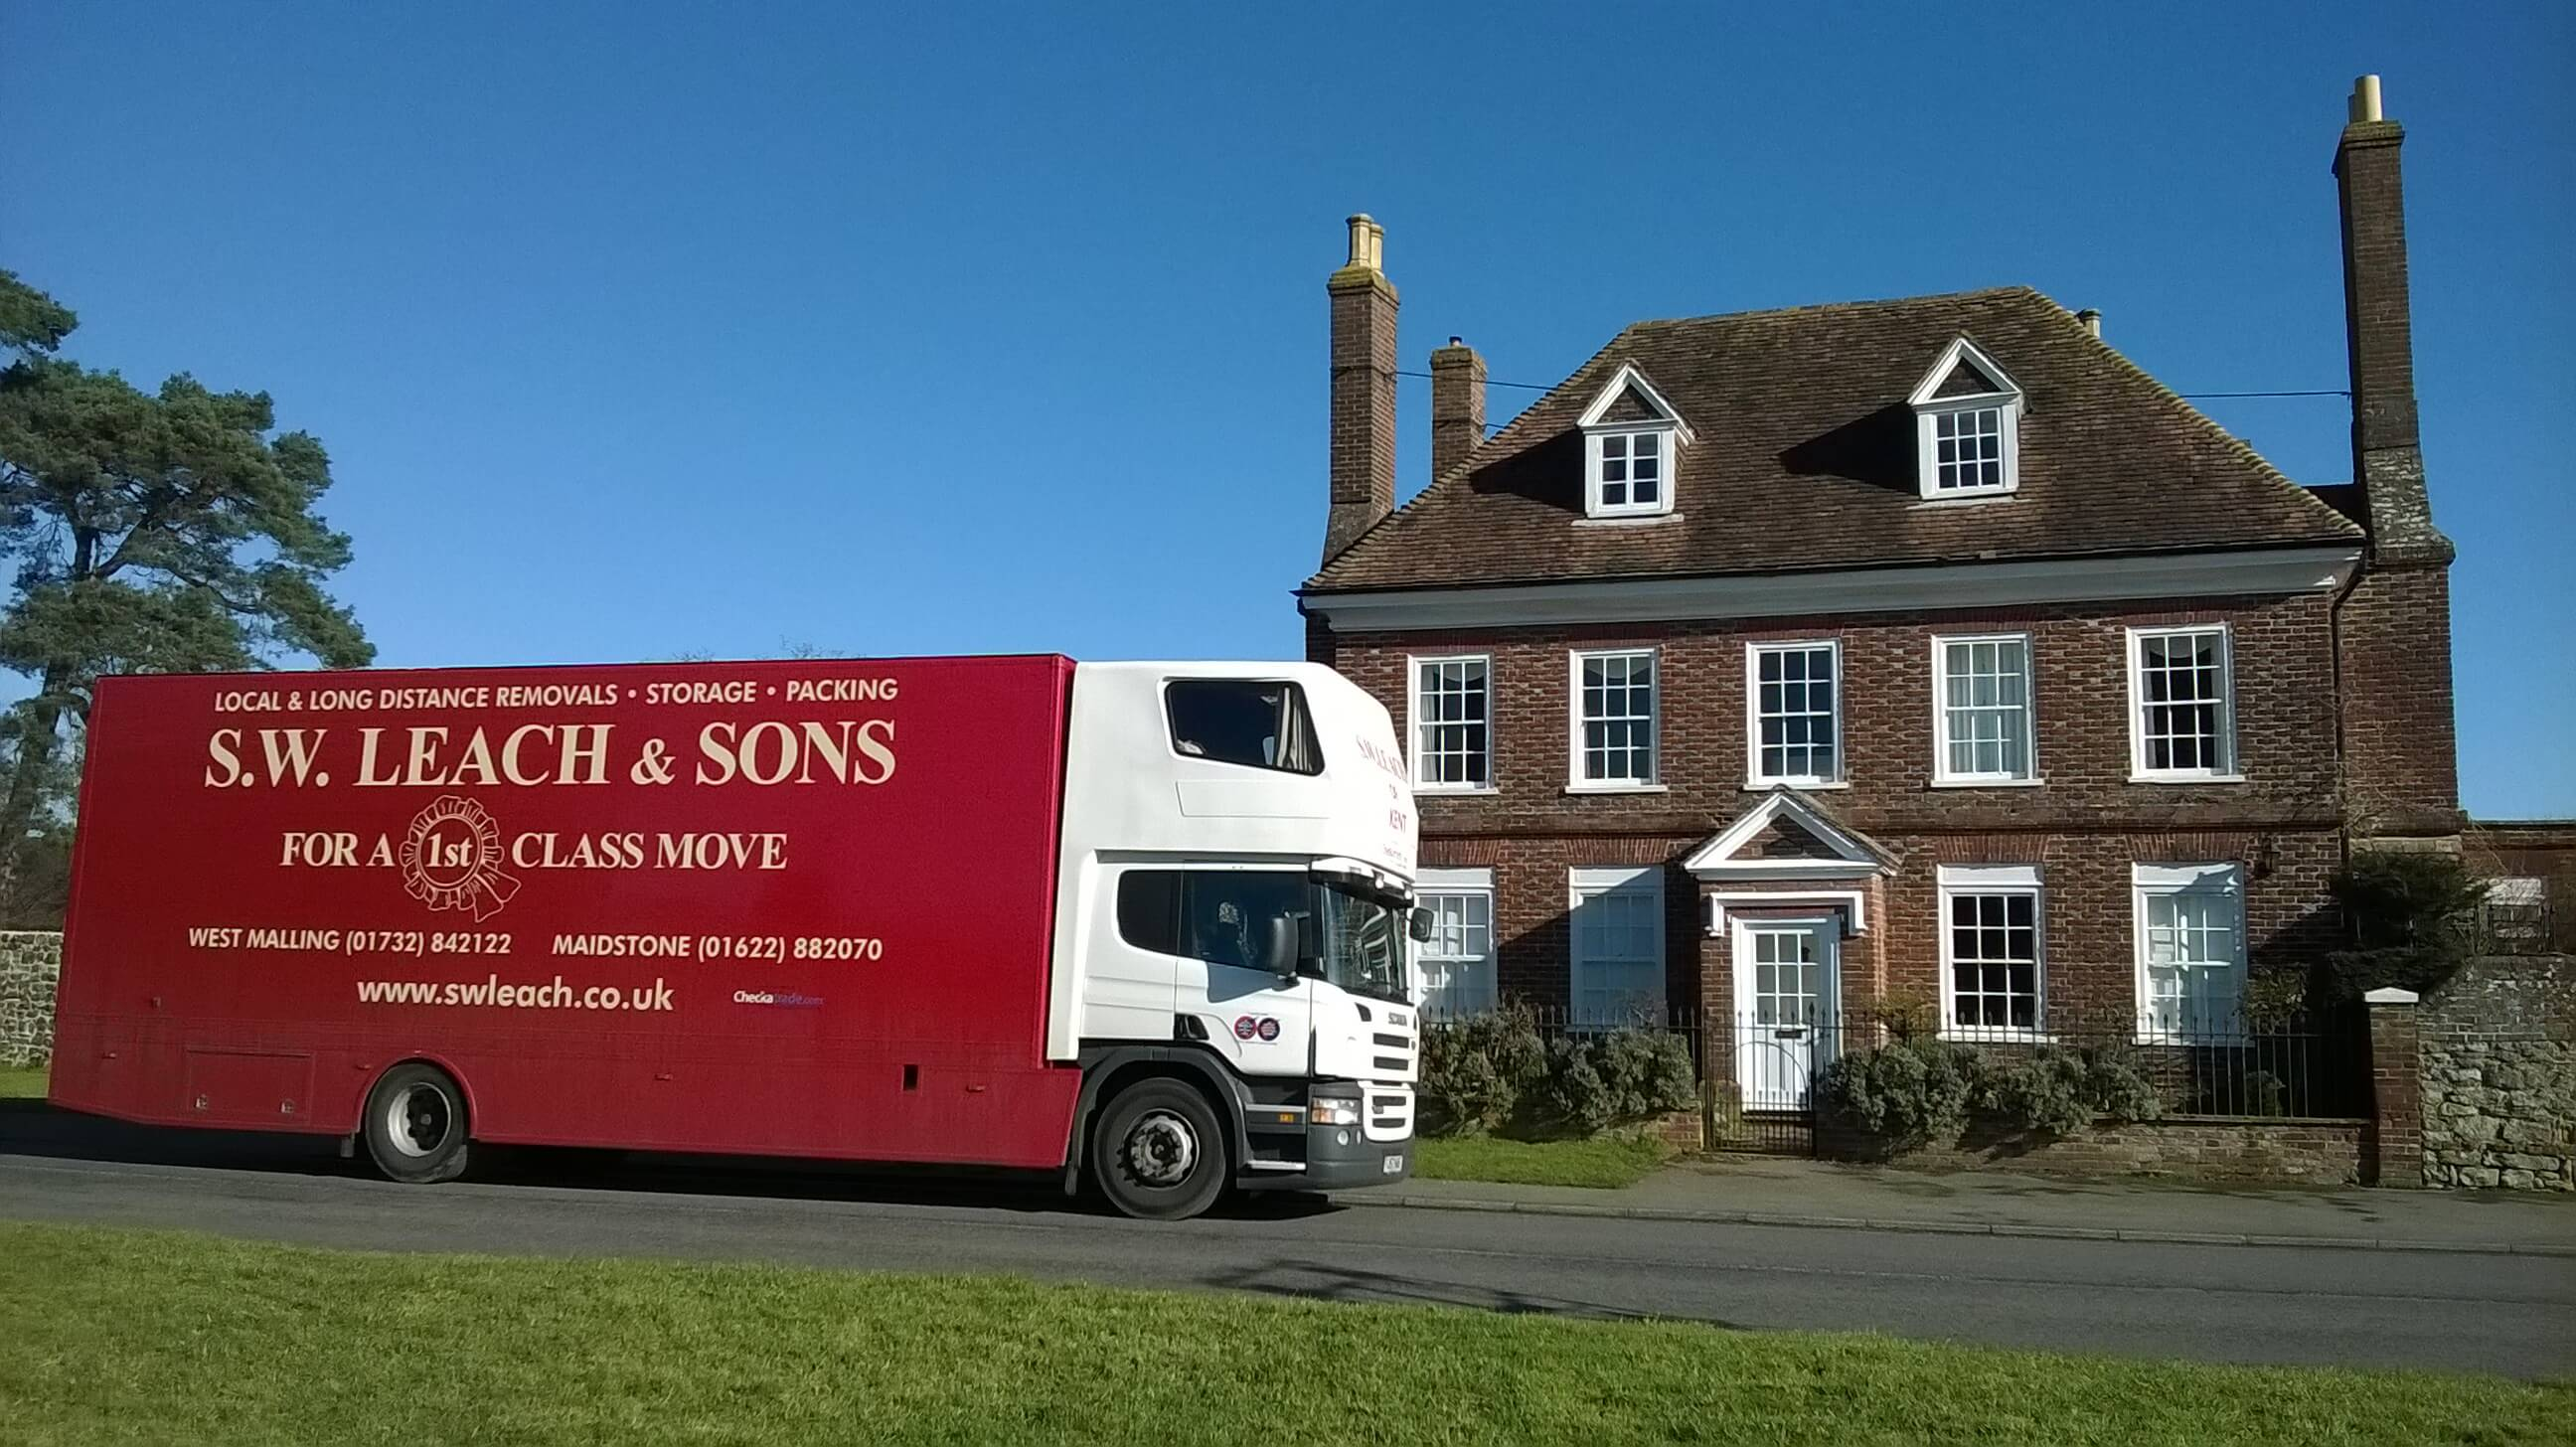 Home S.W. Leach & Sons